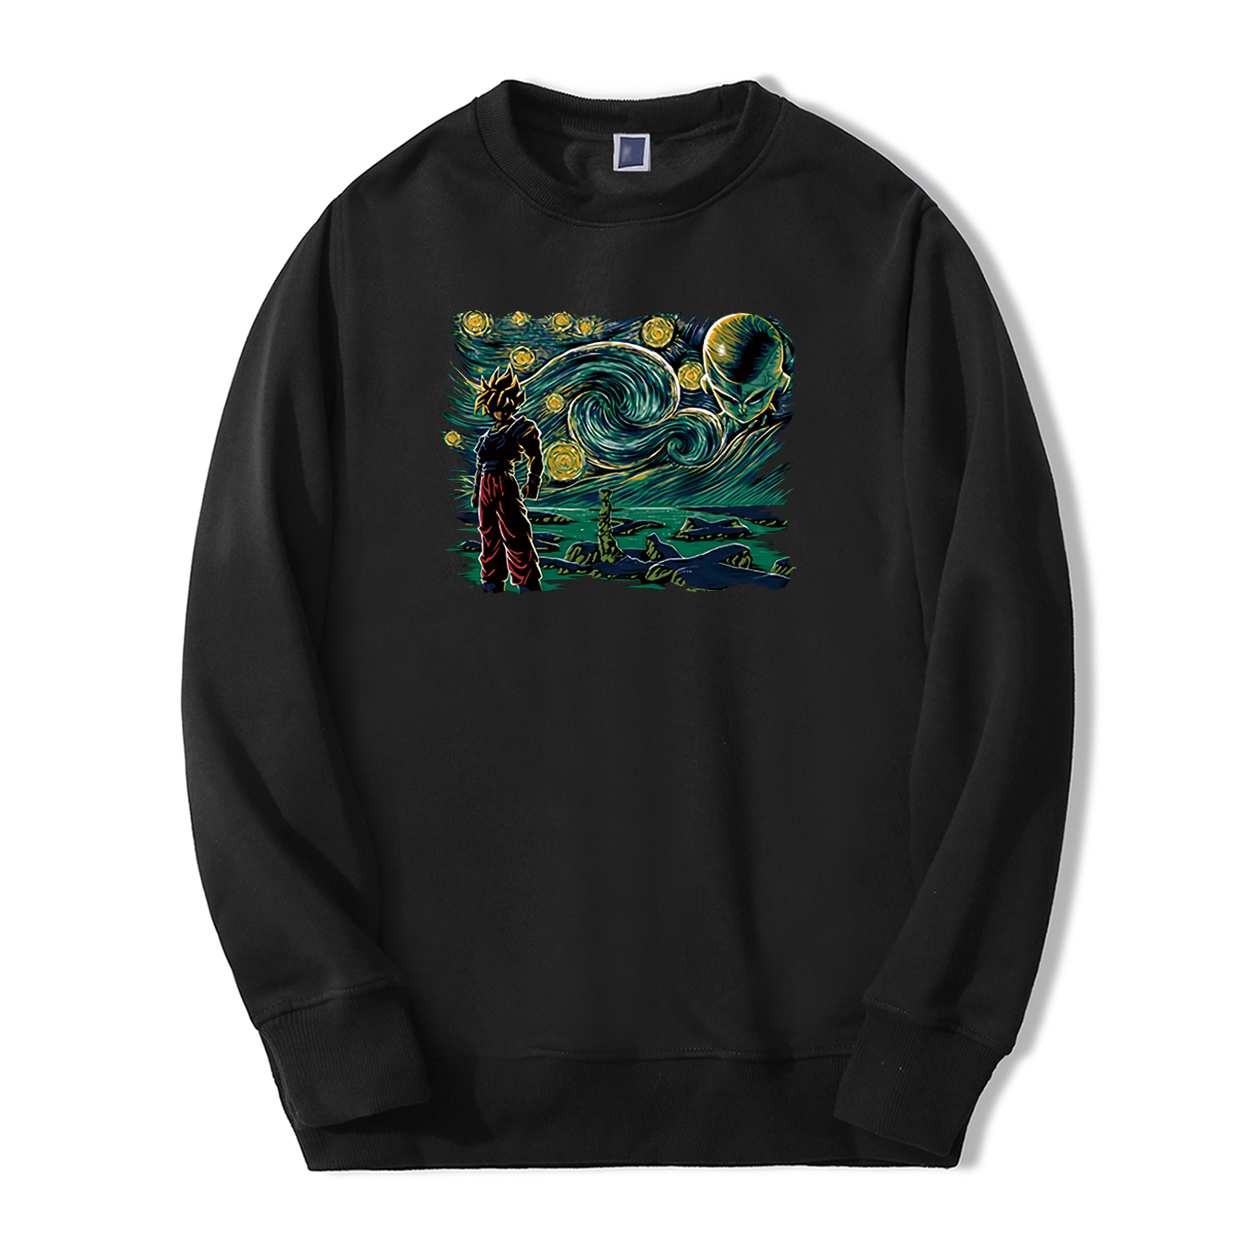 New Arrival Dragon Ball Van Gogh's Saiyan Men's Sweatshirt Warm Fleece Sweatshirts Hoodie Men Harajuku Anime Hip Hop Streetwear